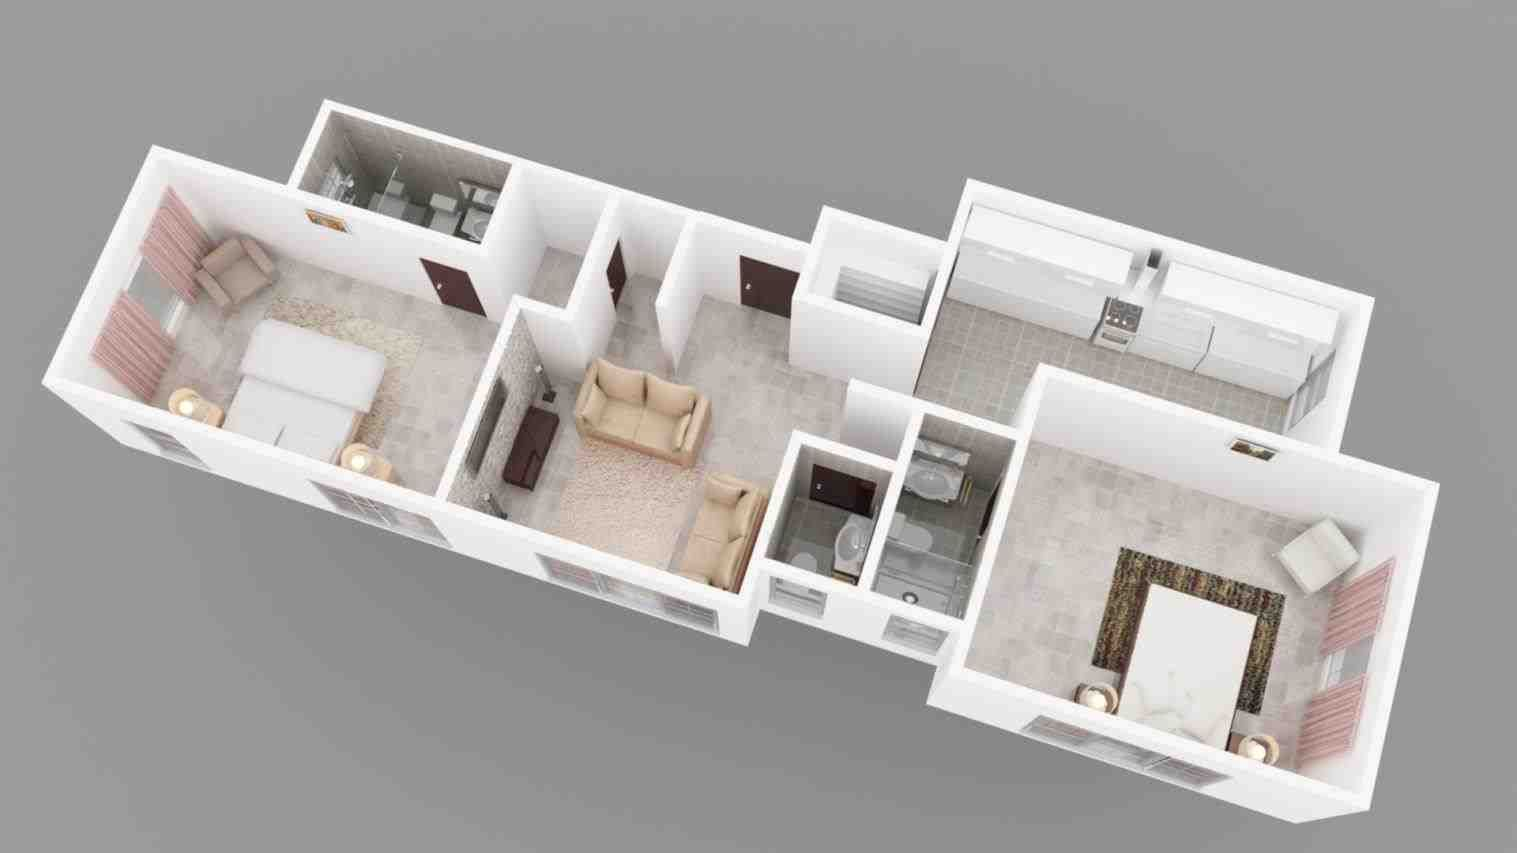 Ghana Apartment Ghana Homes Plans Elegant 4 Bedroom Building Plans In Ghana Modern House Planmodern Hous House Foundation Modern House Apartments For Sale